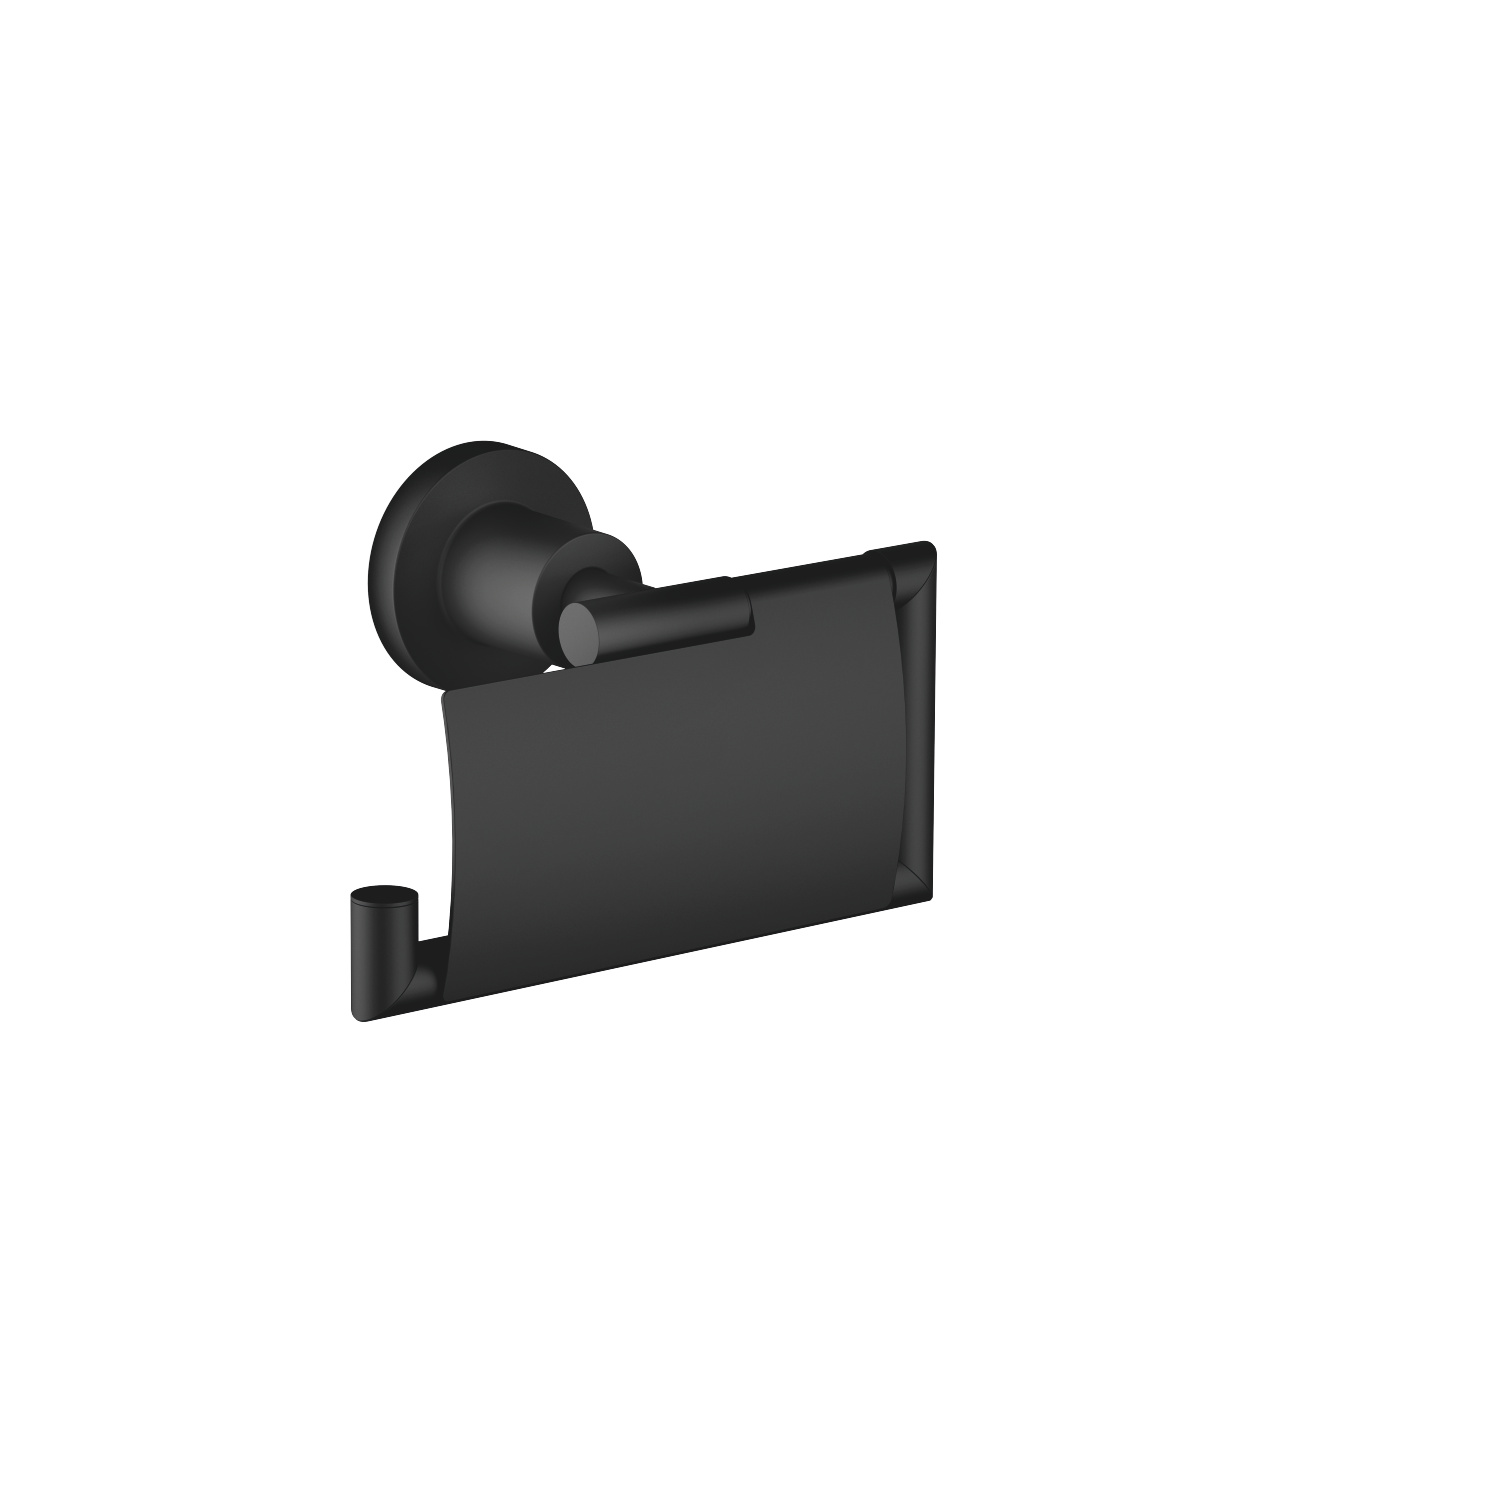 Tissue holder with cover - matt black